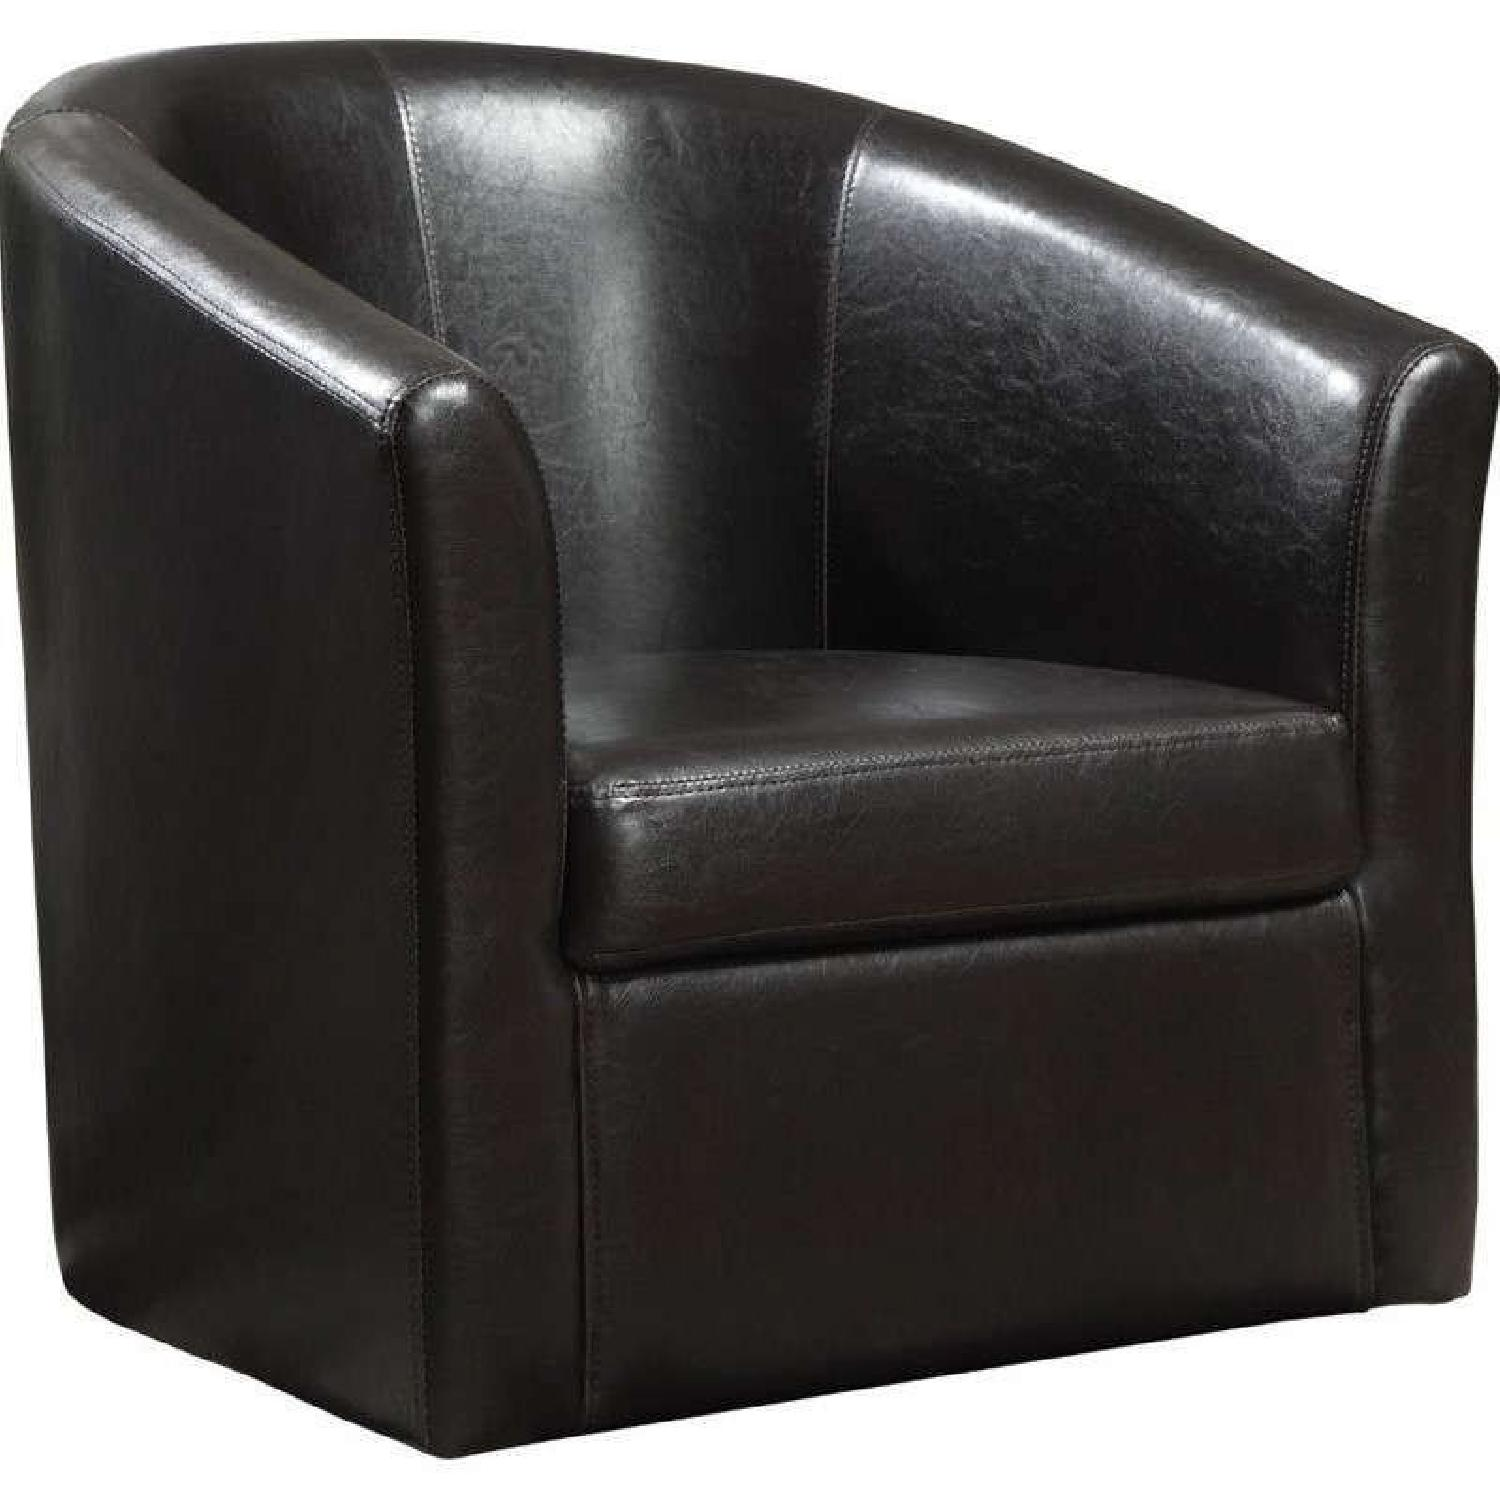 Modern Accent Chair in Dark Brown Faux Leather - image-0